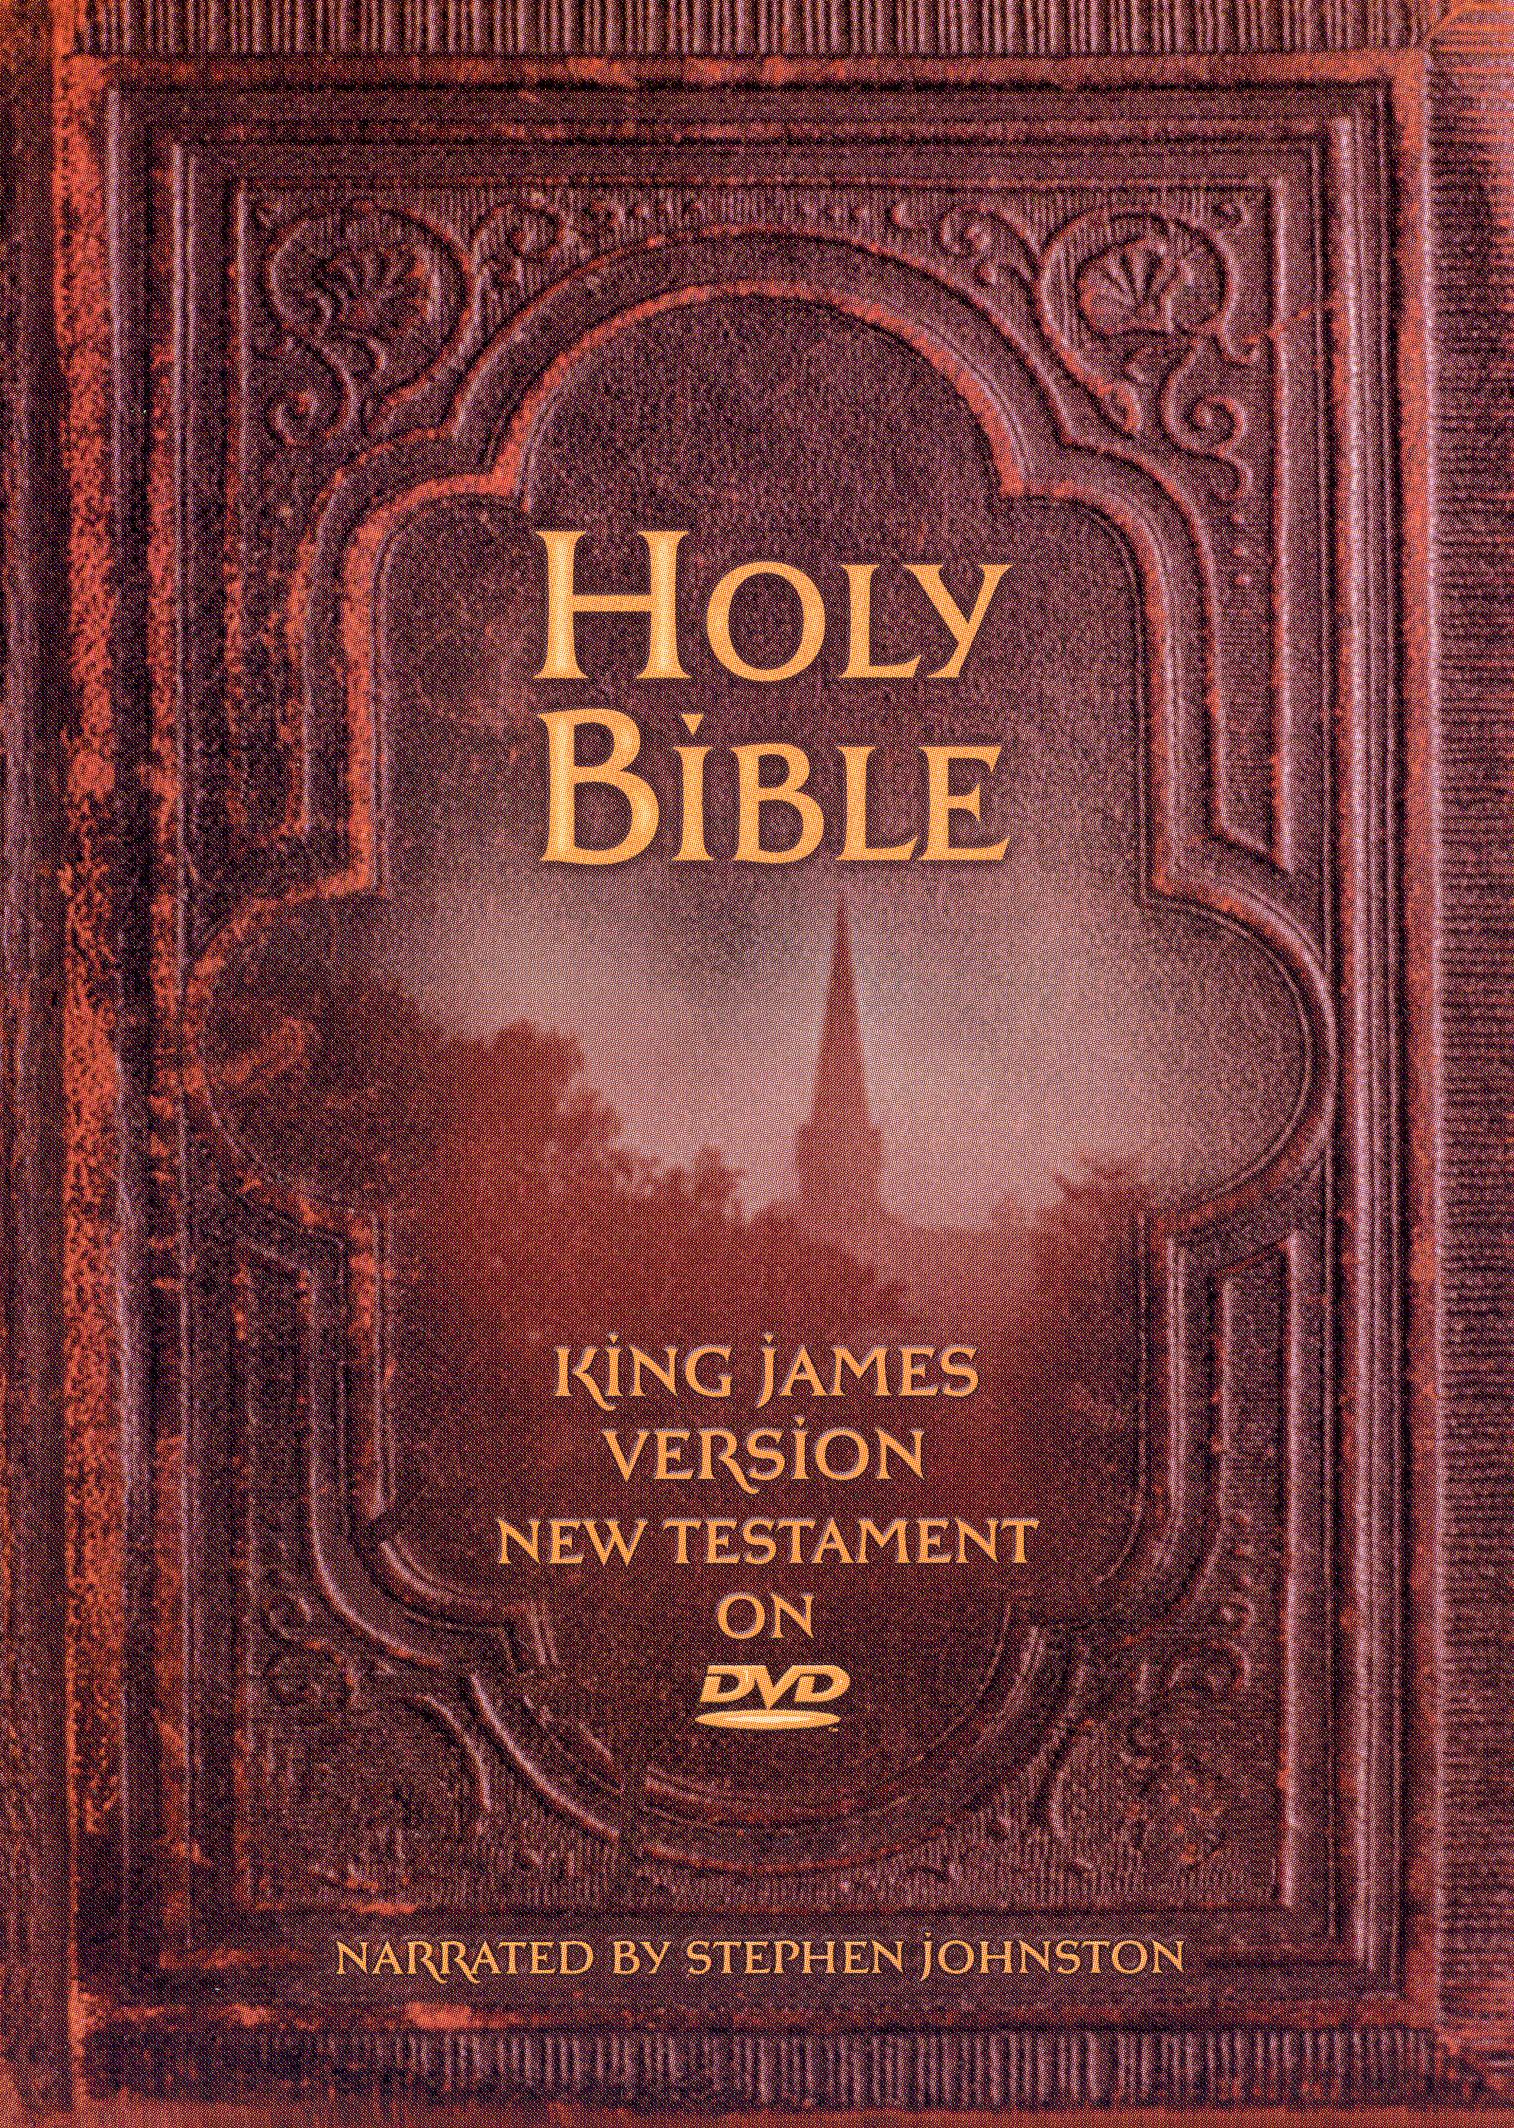 Holy Bible: King James Version - New Testament